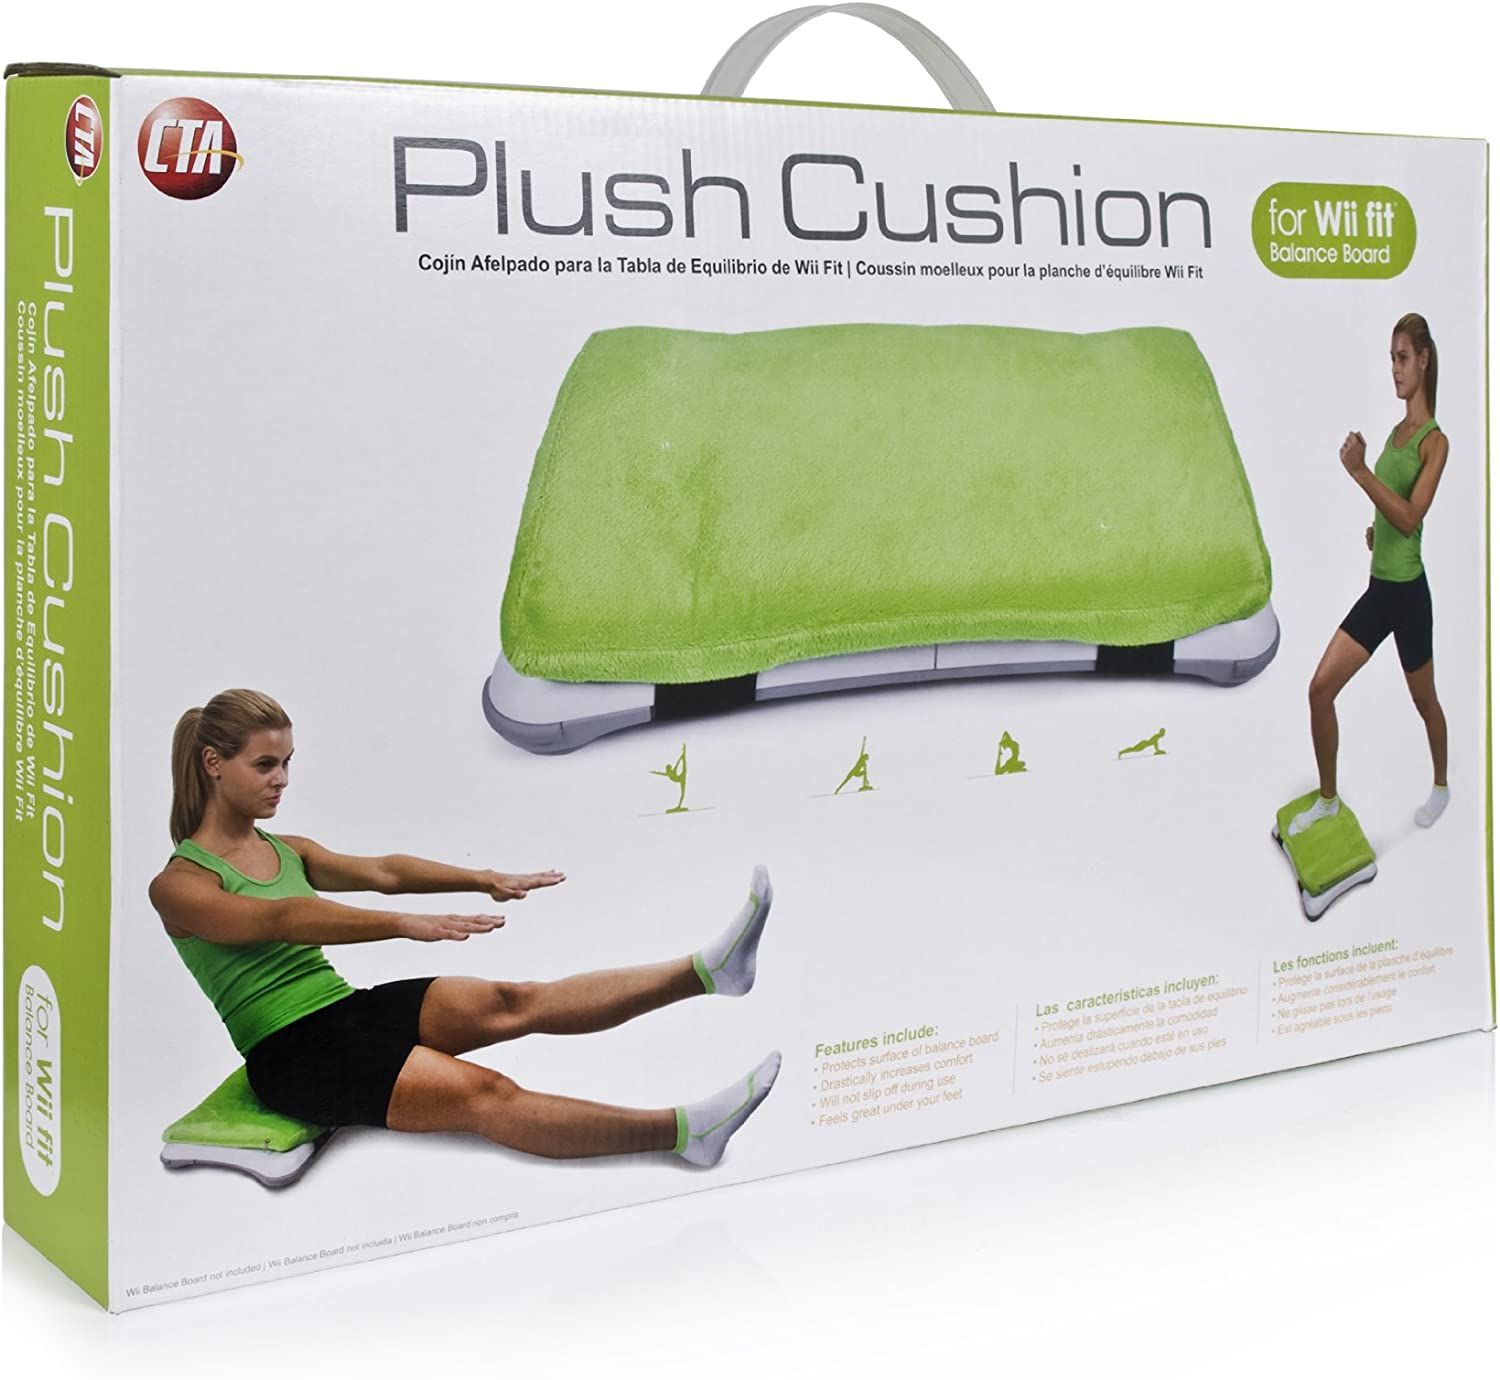 Amazon.com: Wii Plush Cushion for Wii Fit Balance Board ...